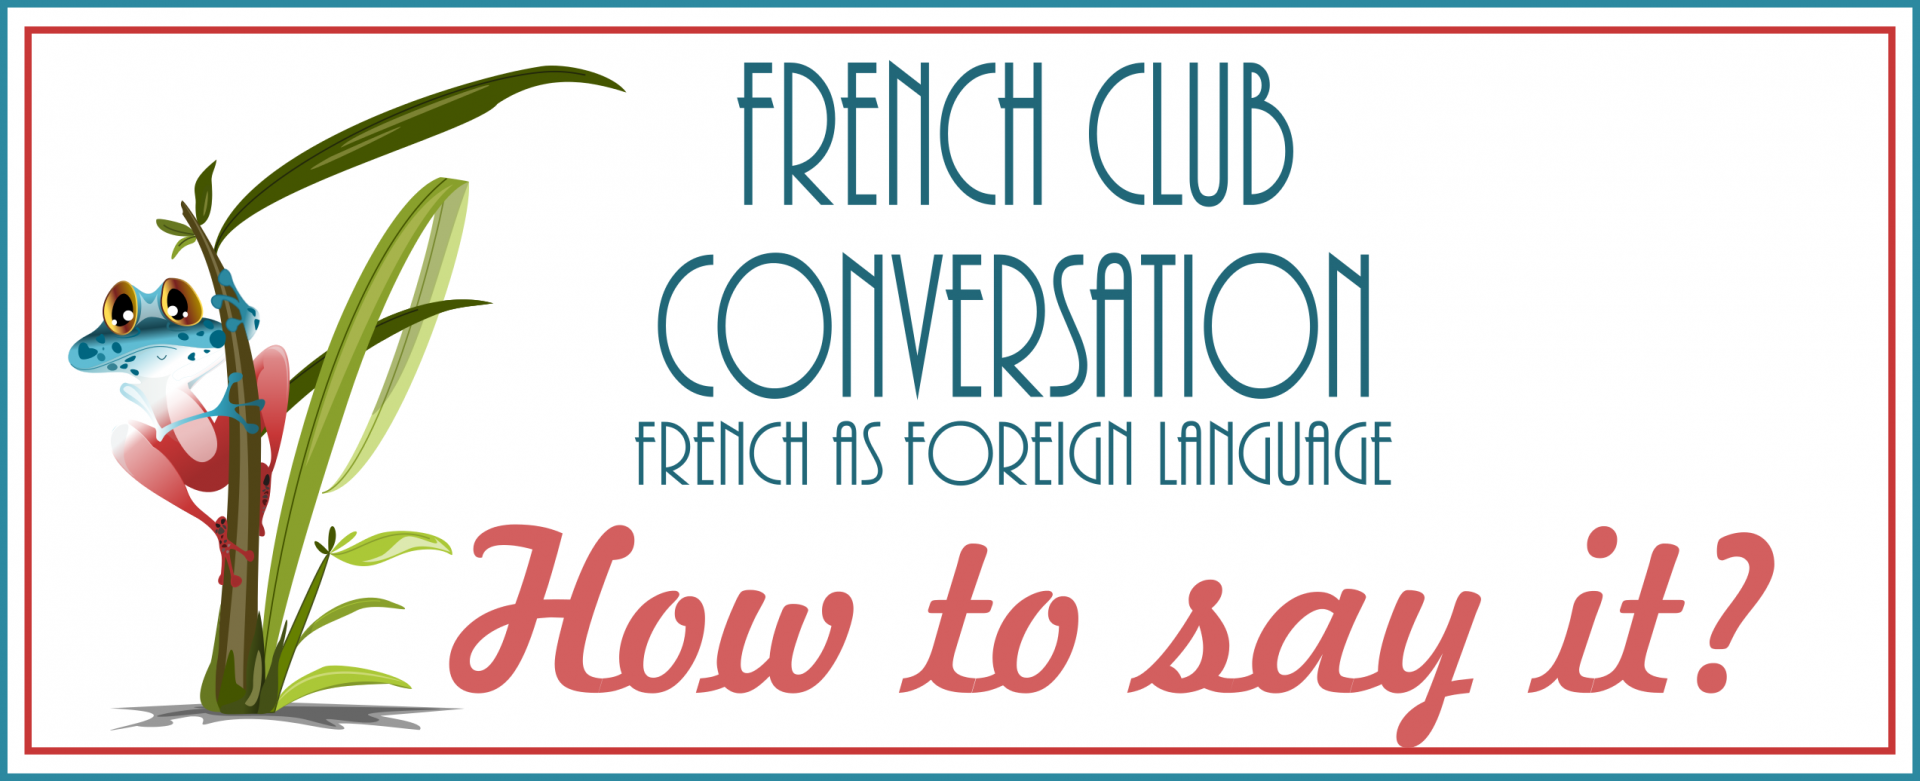 French Club conversation How to say